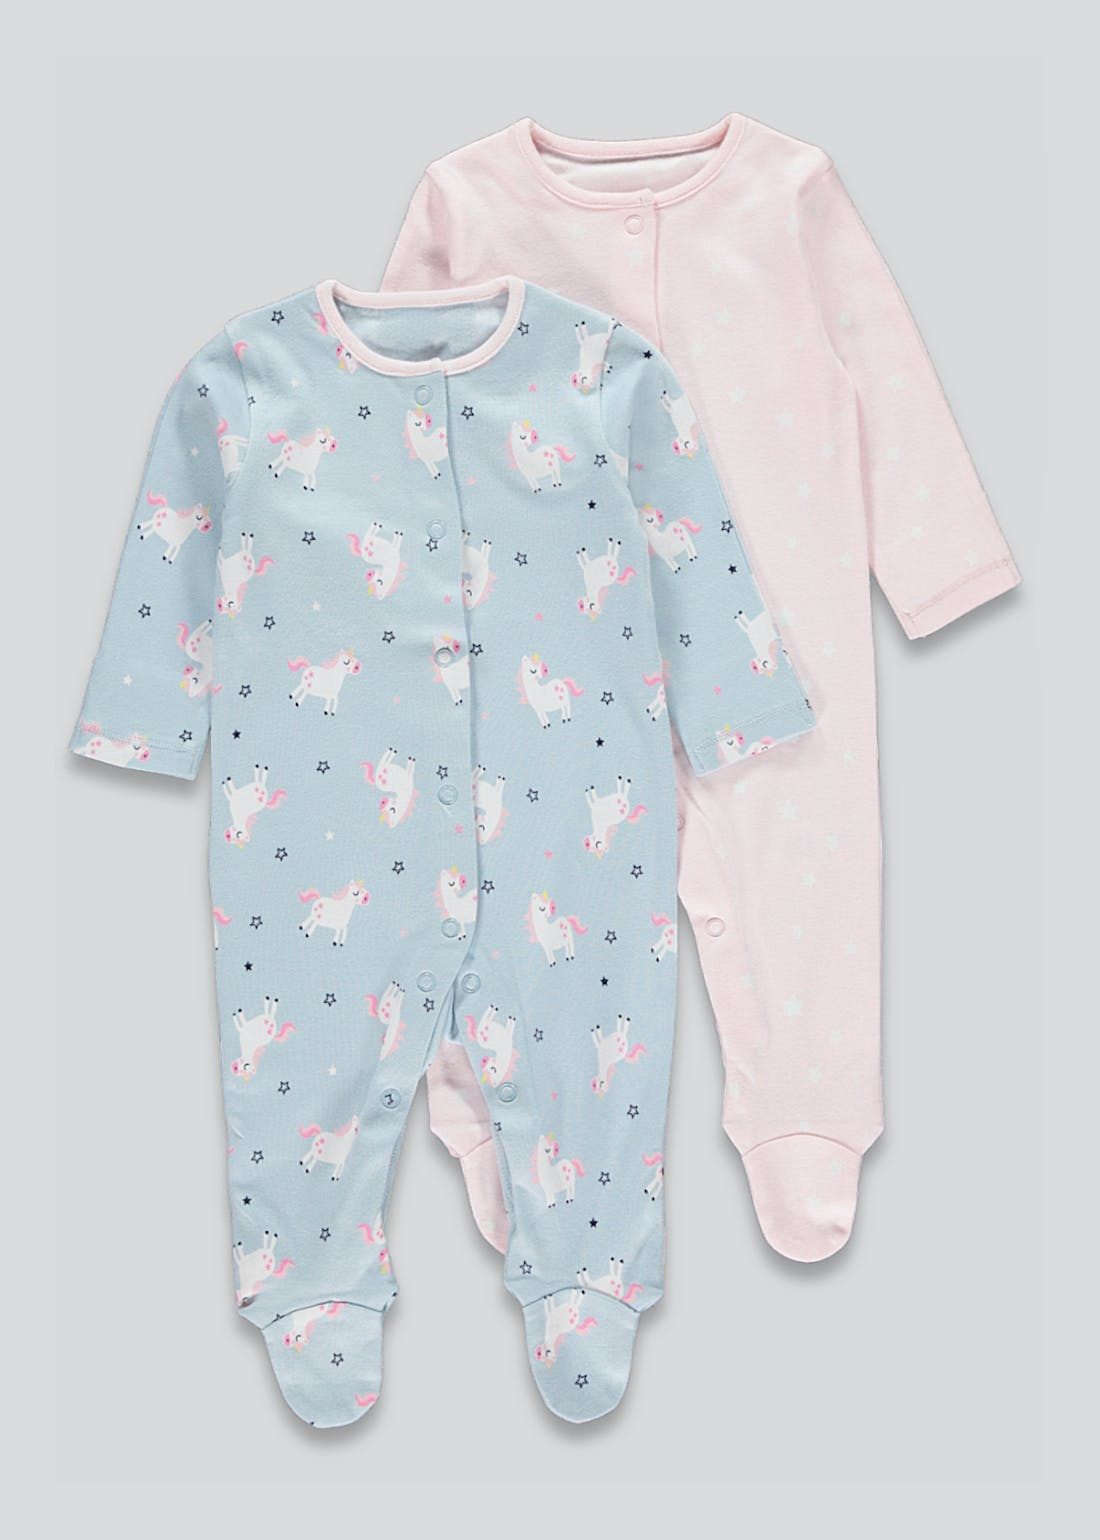 Girls 2 Pack Unicorn Sleepsuits (Newborn-23mths)